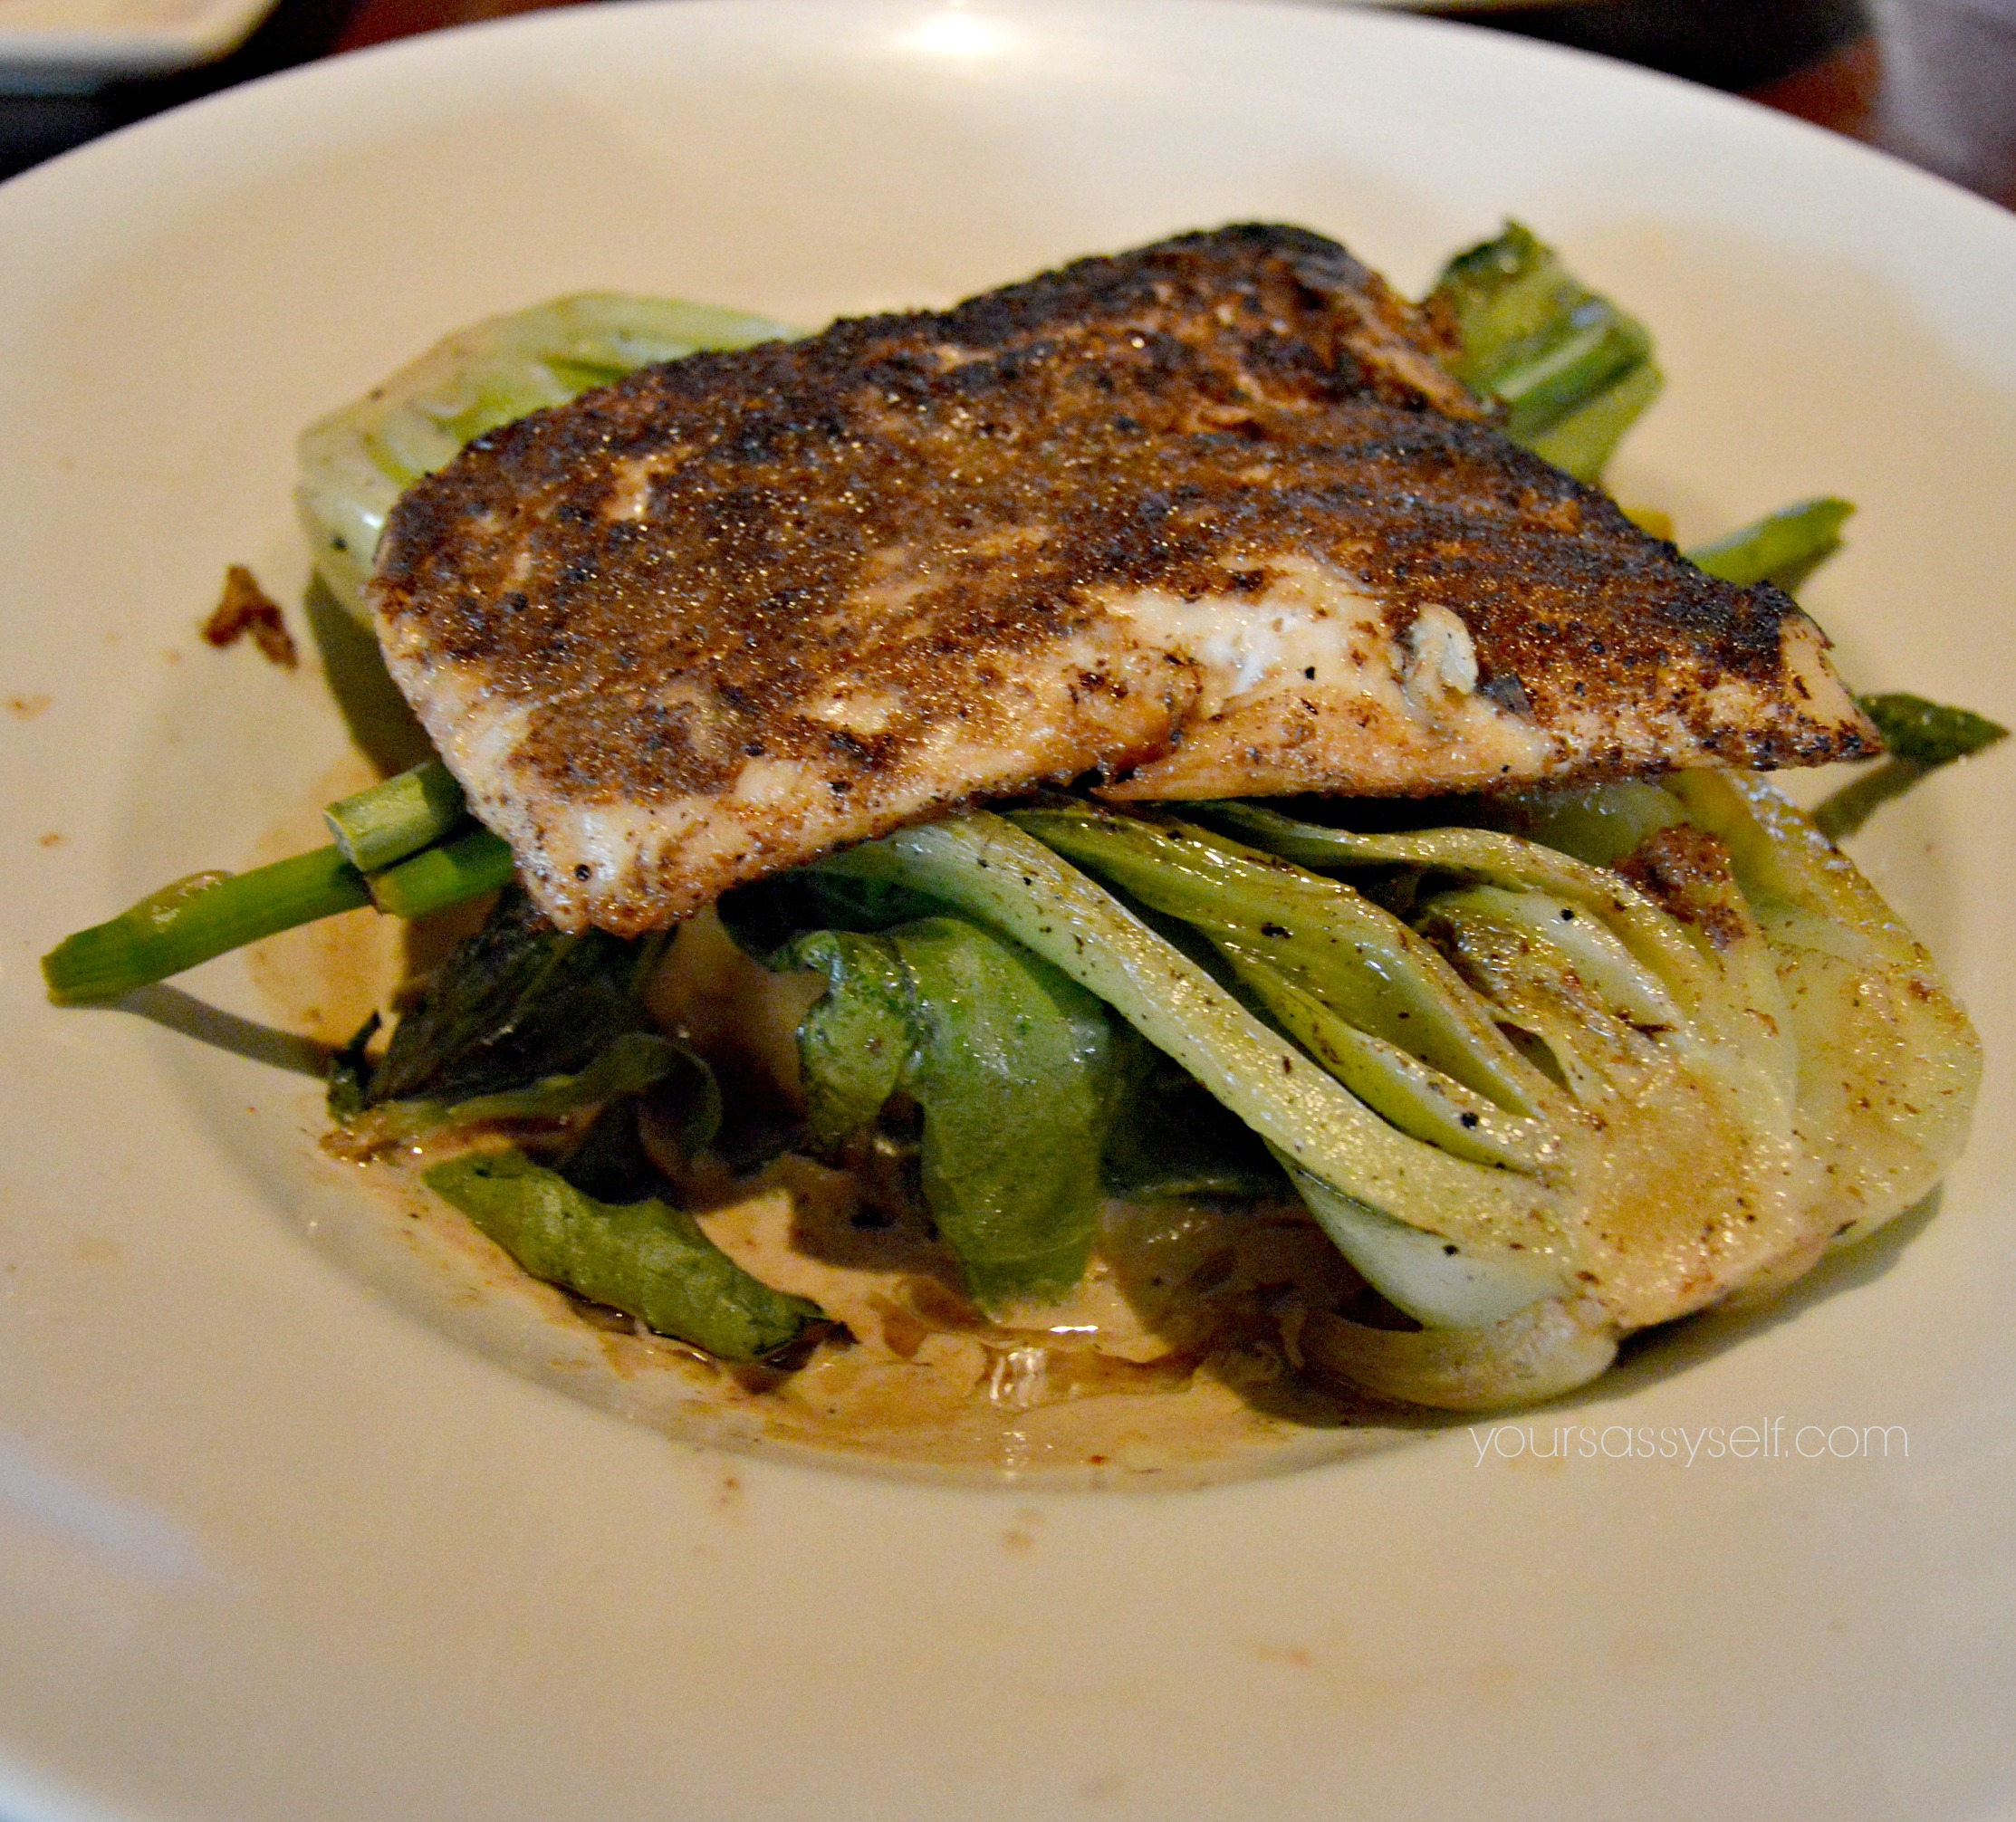 Halibut over veggies - yoursassyself.com